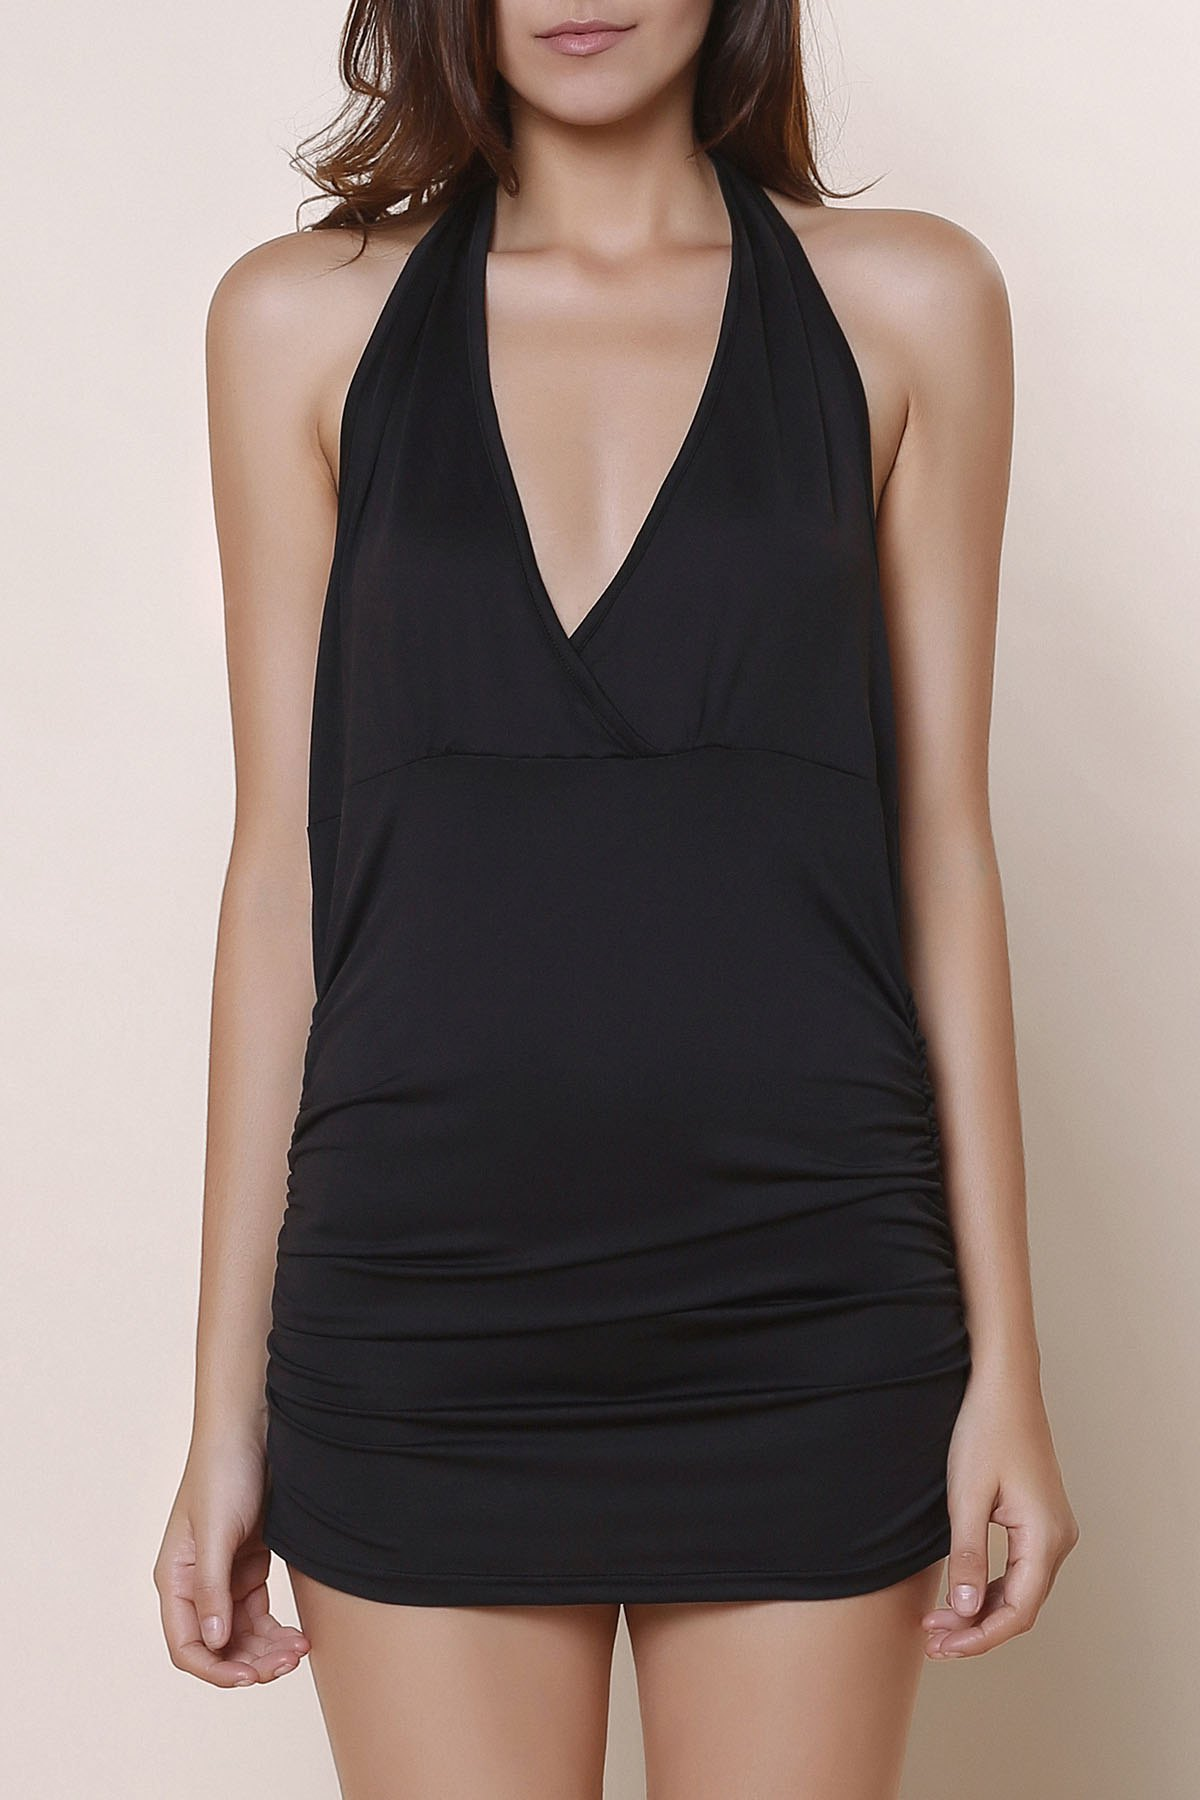 Halter Sleeveless Solid Color Backless Ruched Tank Top - BLACK XL